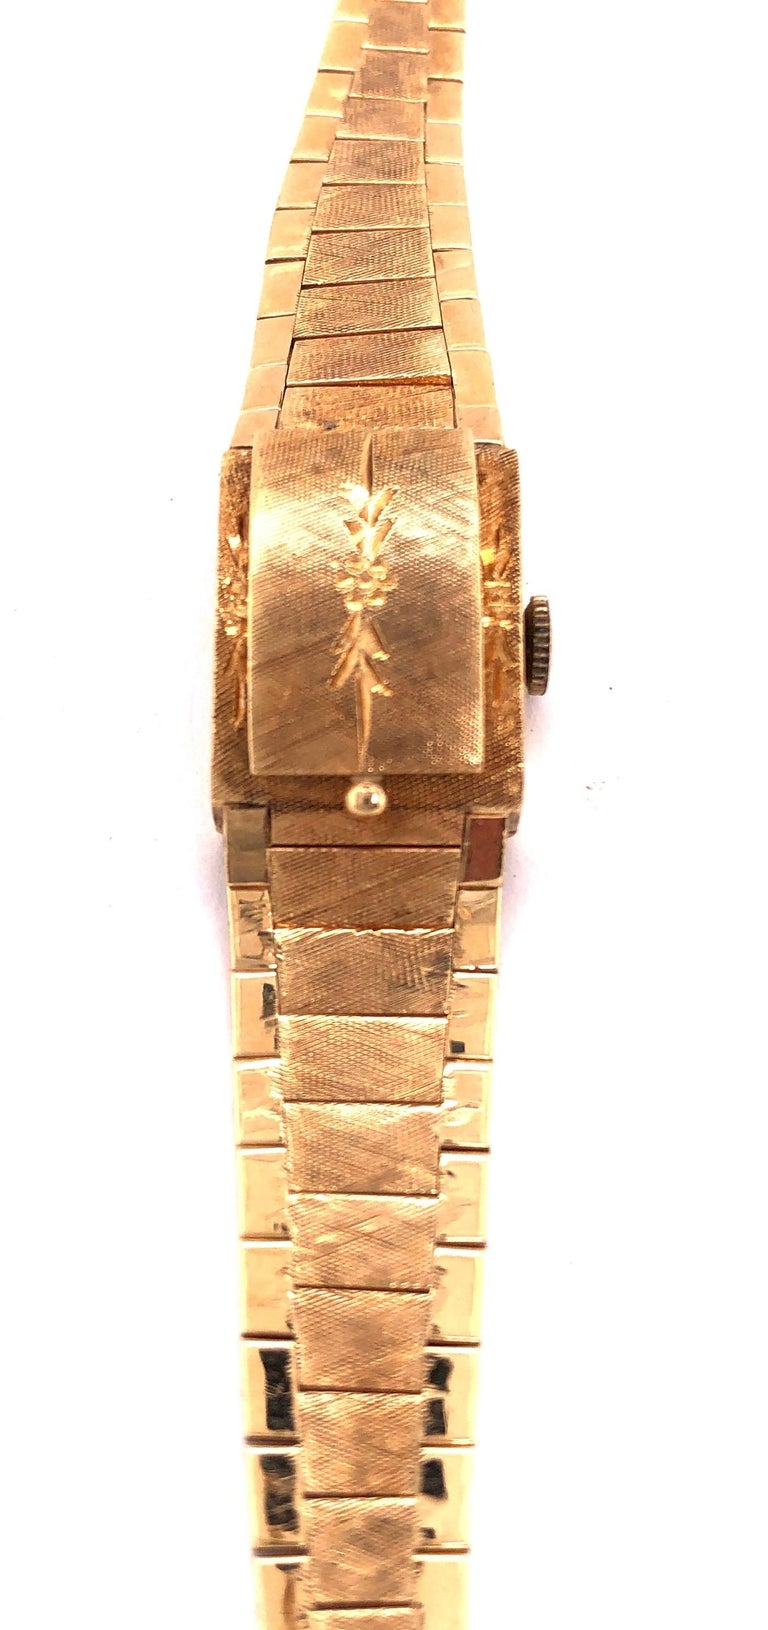 Mid Century Modern Sellita Ladies 14 Karat Yellow Gold Bracelet Wrist Watch 21.9 Grams Swiss 17 Jewels. 6.5 inch. This bracelet wrist watch has a hidden face under an etched cover. Art Deco in Style 21.9 grams.   Sellita is a Swiss movement